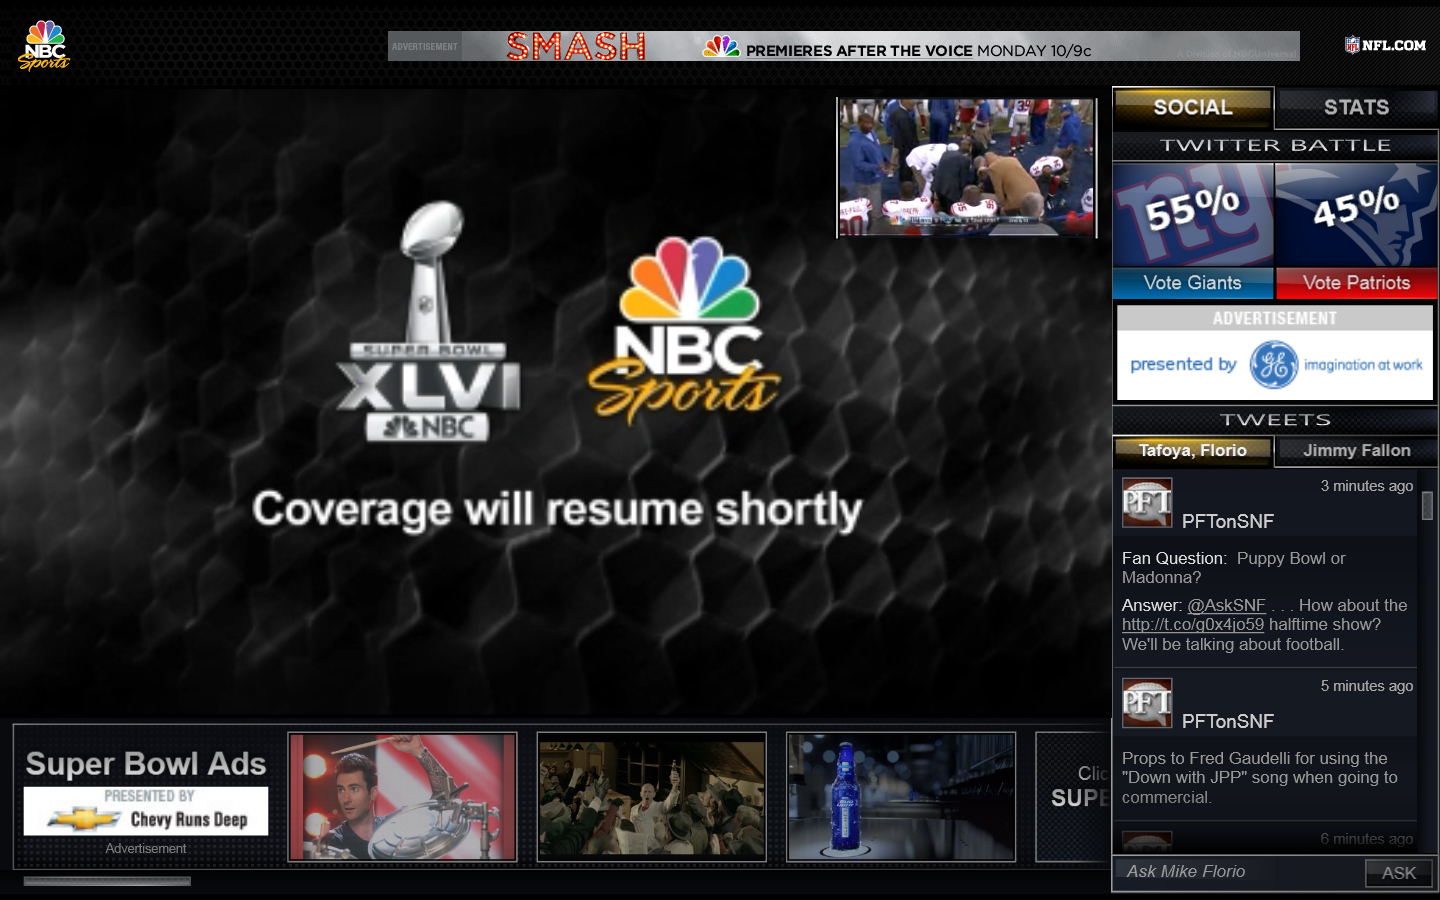 Super Bowl Coverage Will Resume Shortly